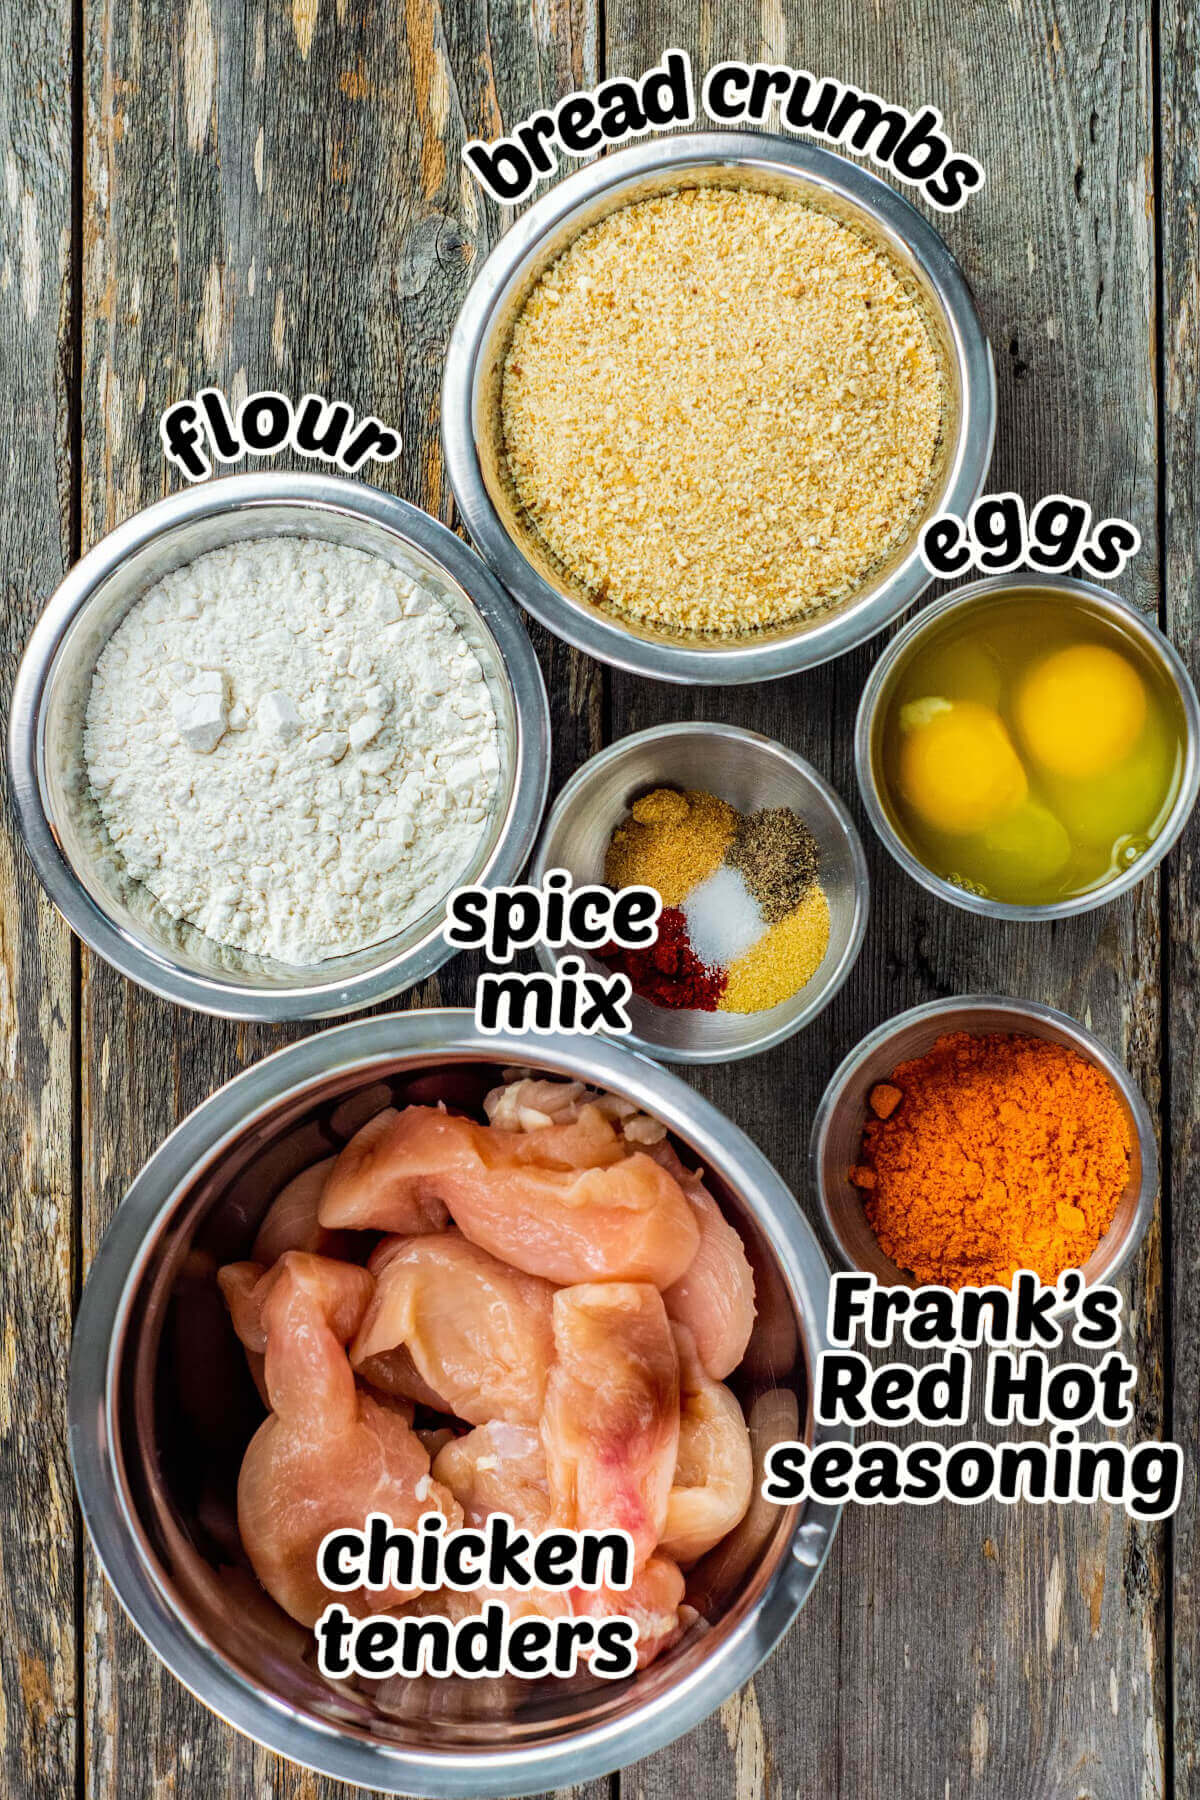 All of the ingredients needed to make recipe.